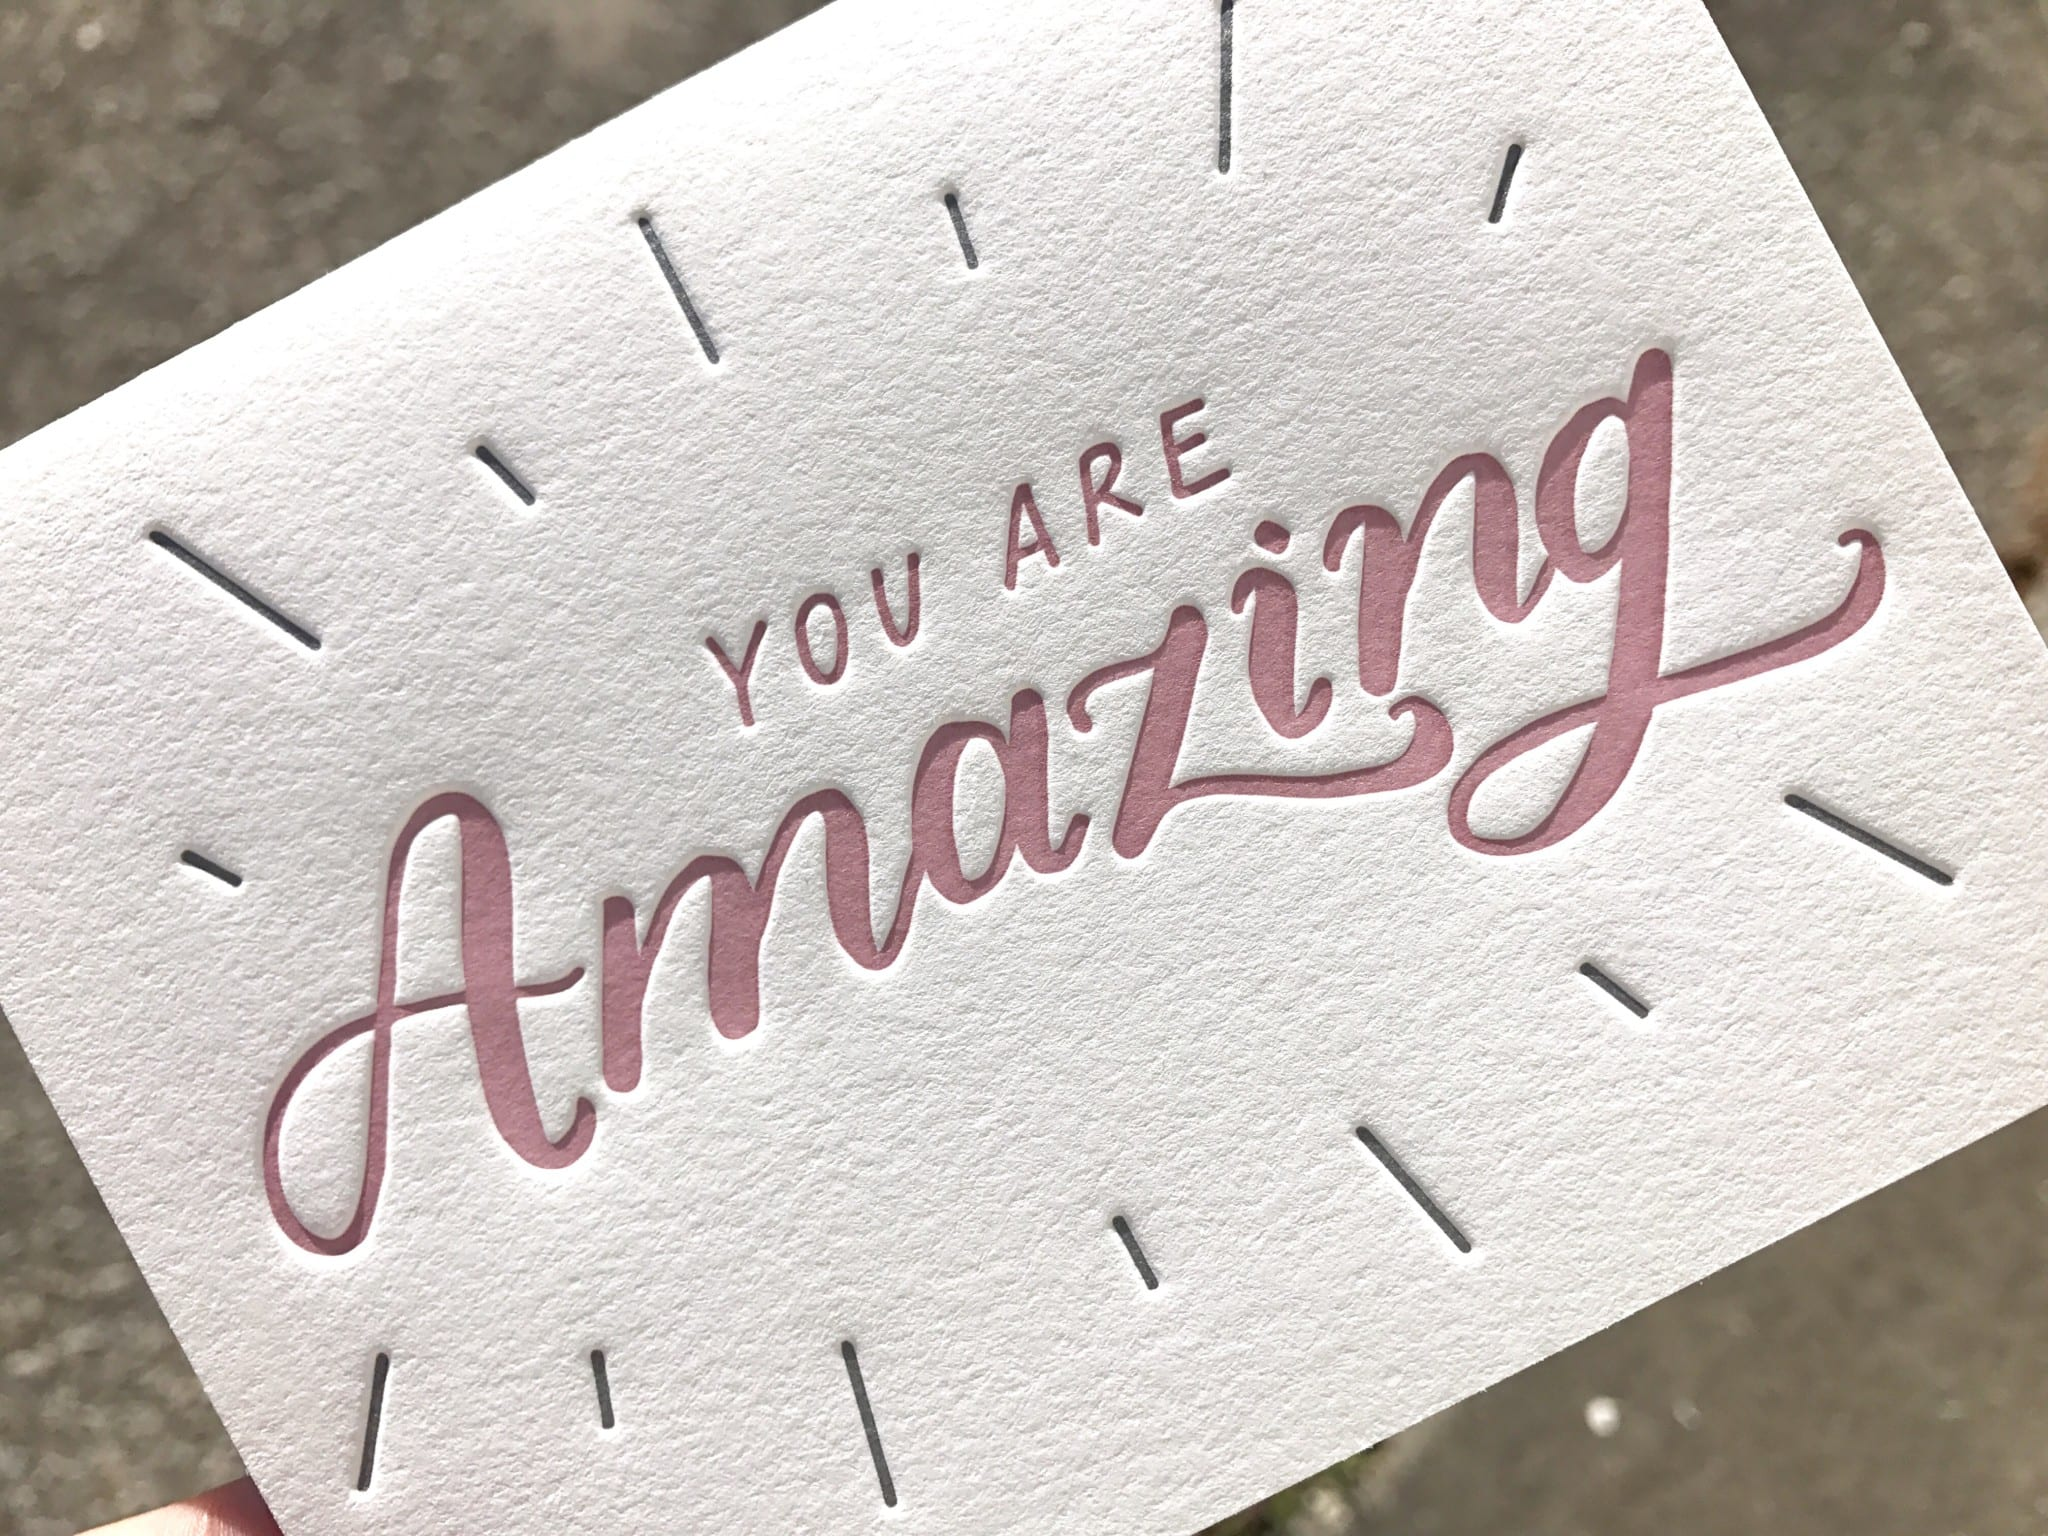 You Are Amazing handlettering letterpress-printed into 100% cotton paper showing depth of impression.